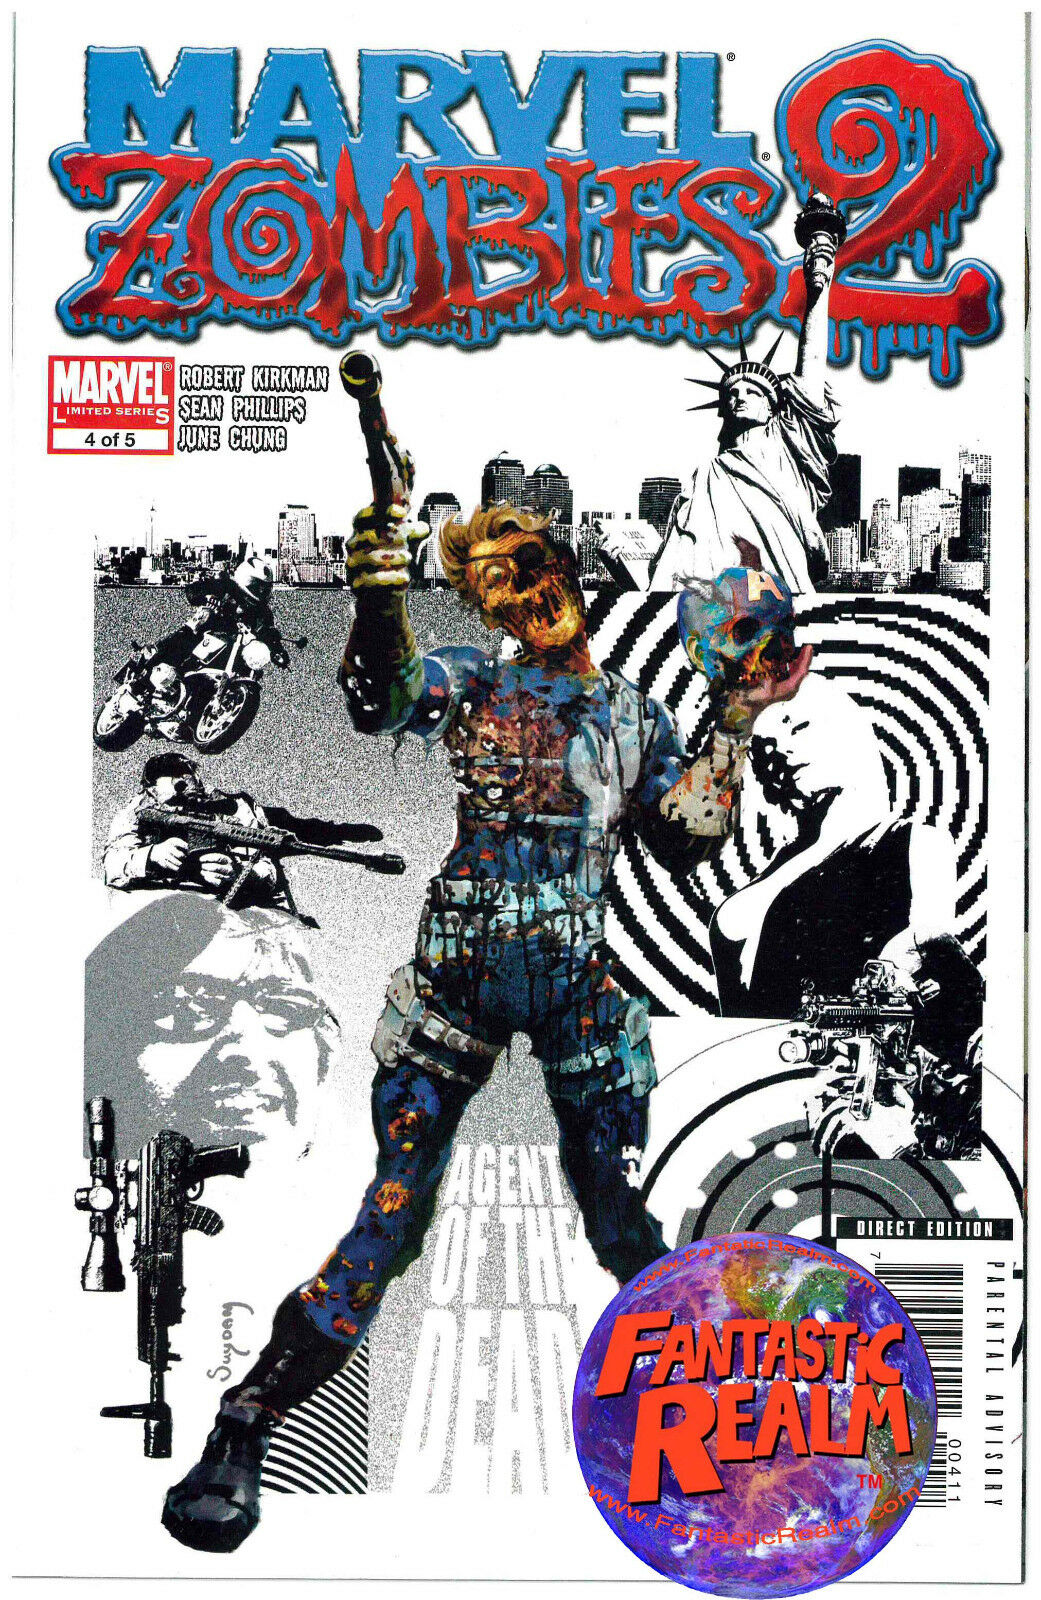 MARVEL ZOMBIES 2 #4 of 5 MARVEL COMICS